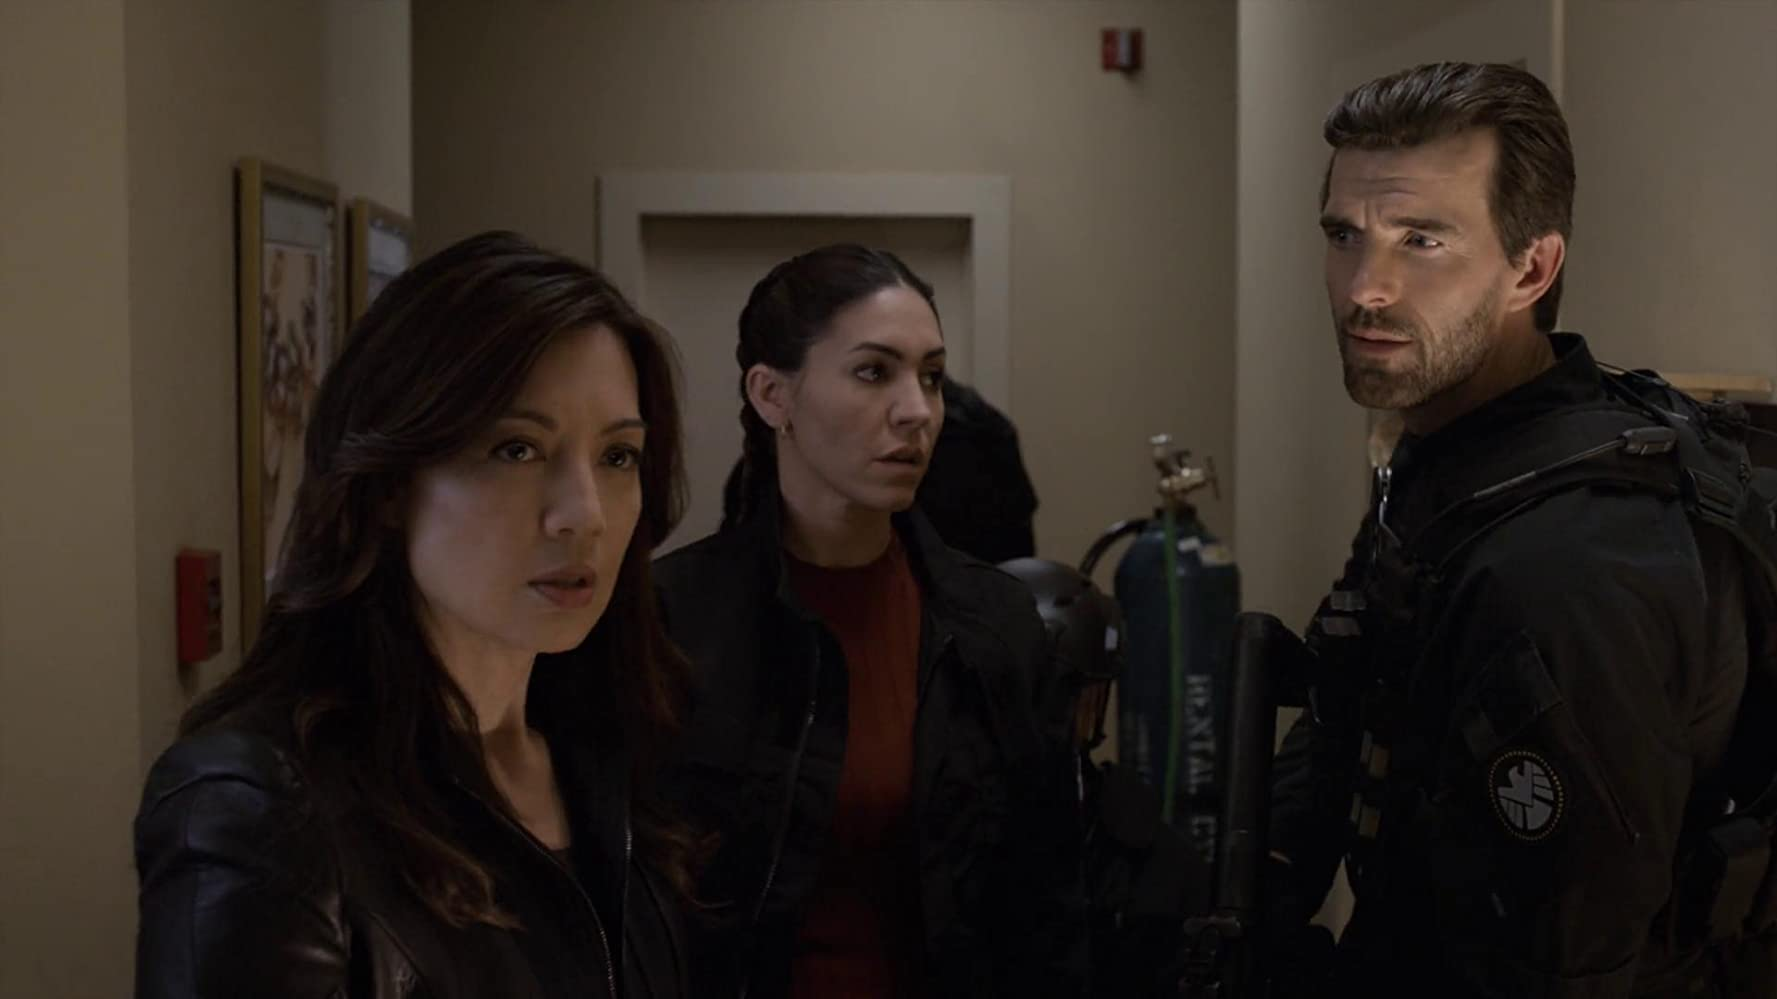 Ming-Na Wen, Lucas Bryant, and Natalia Cordova-Buckley in Agents of S.H.I.E.L.D. (2013)